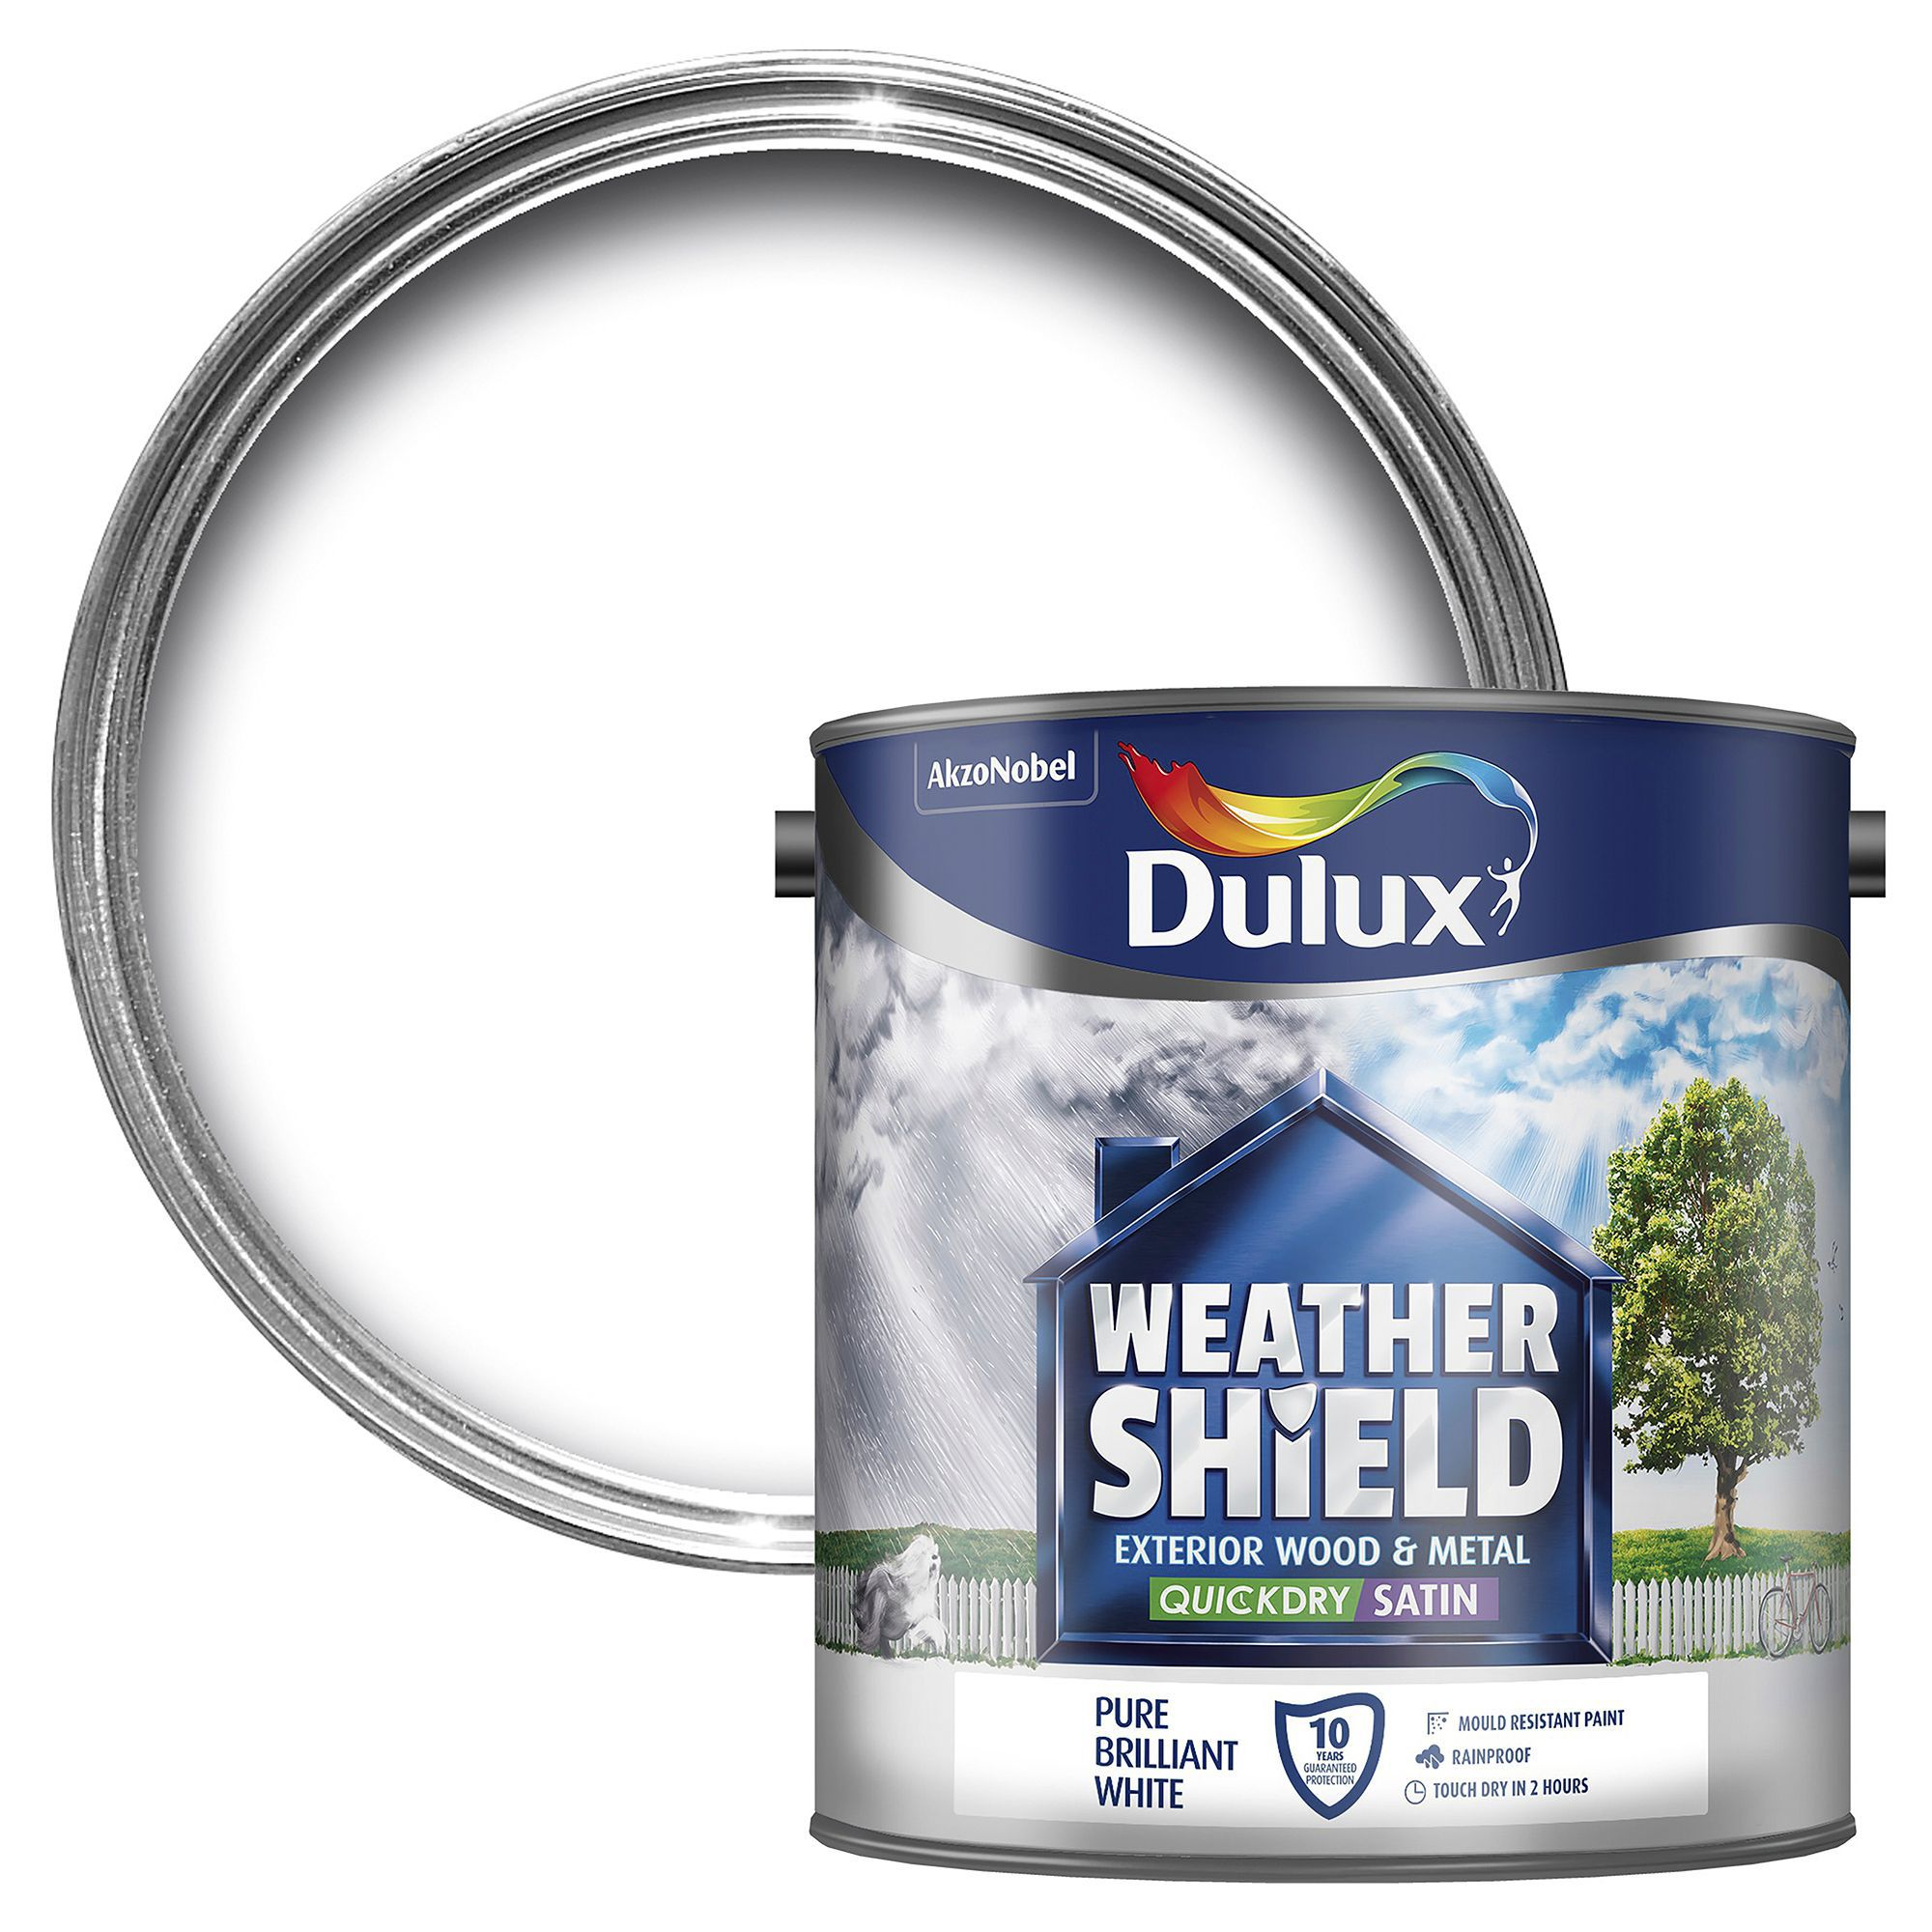 Diy at b q - Dulux weathershield exterior paint minimalist ...